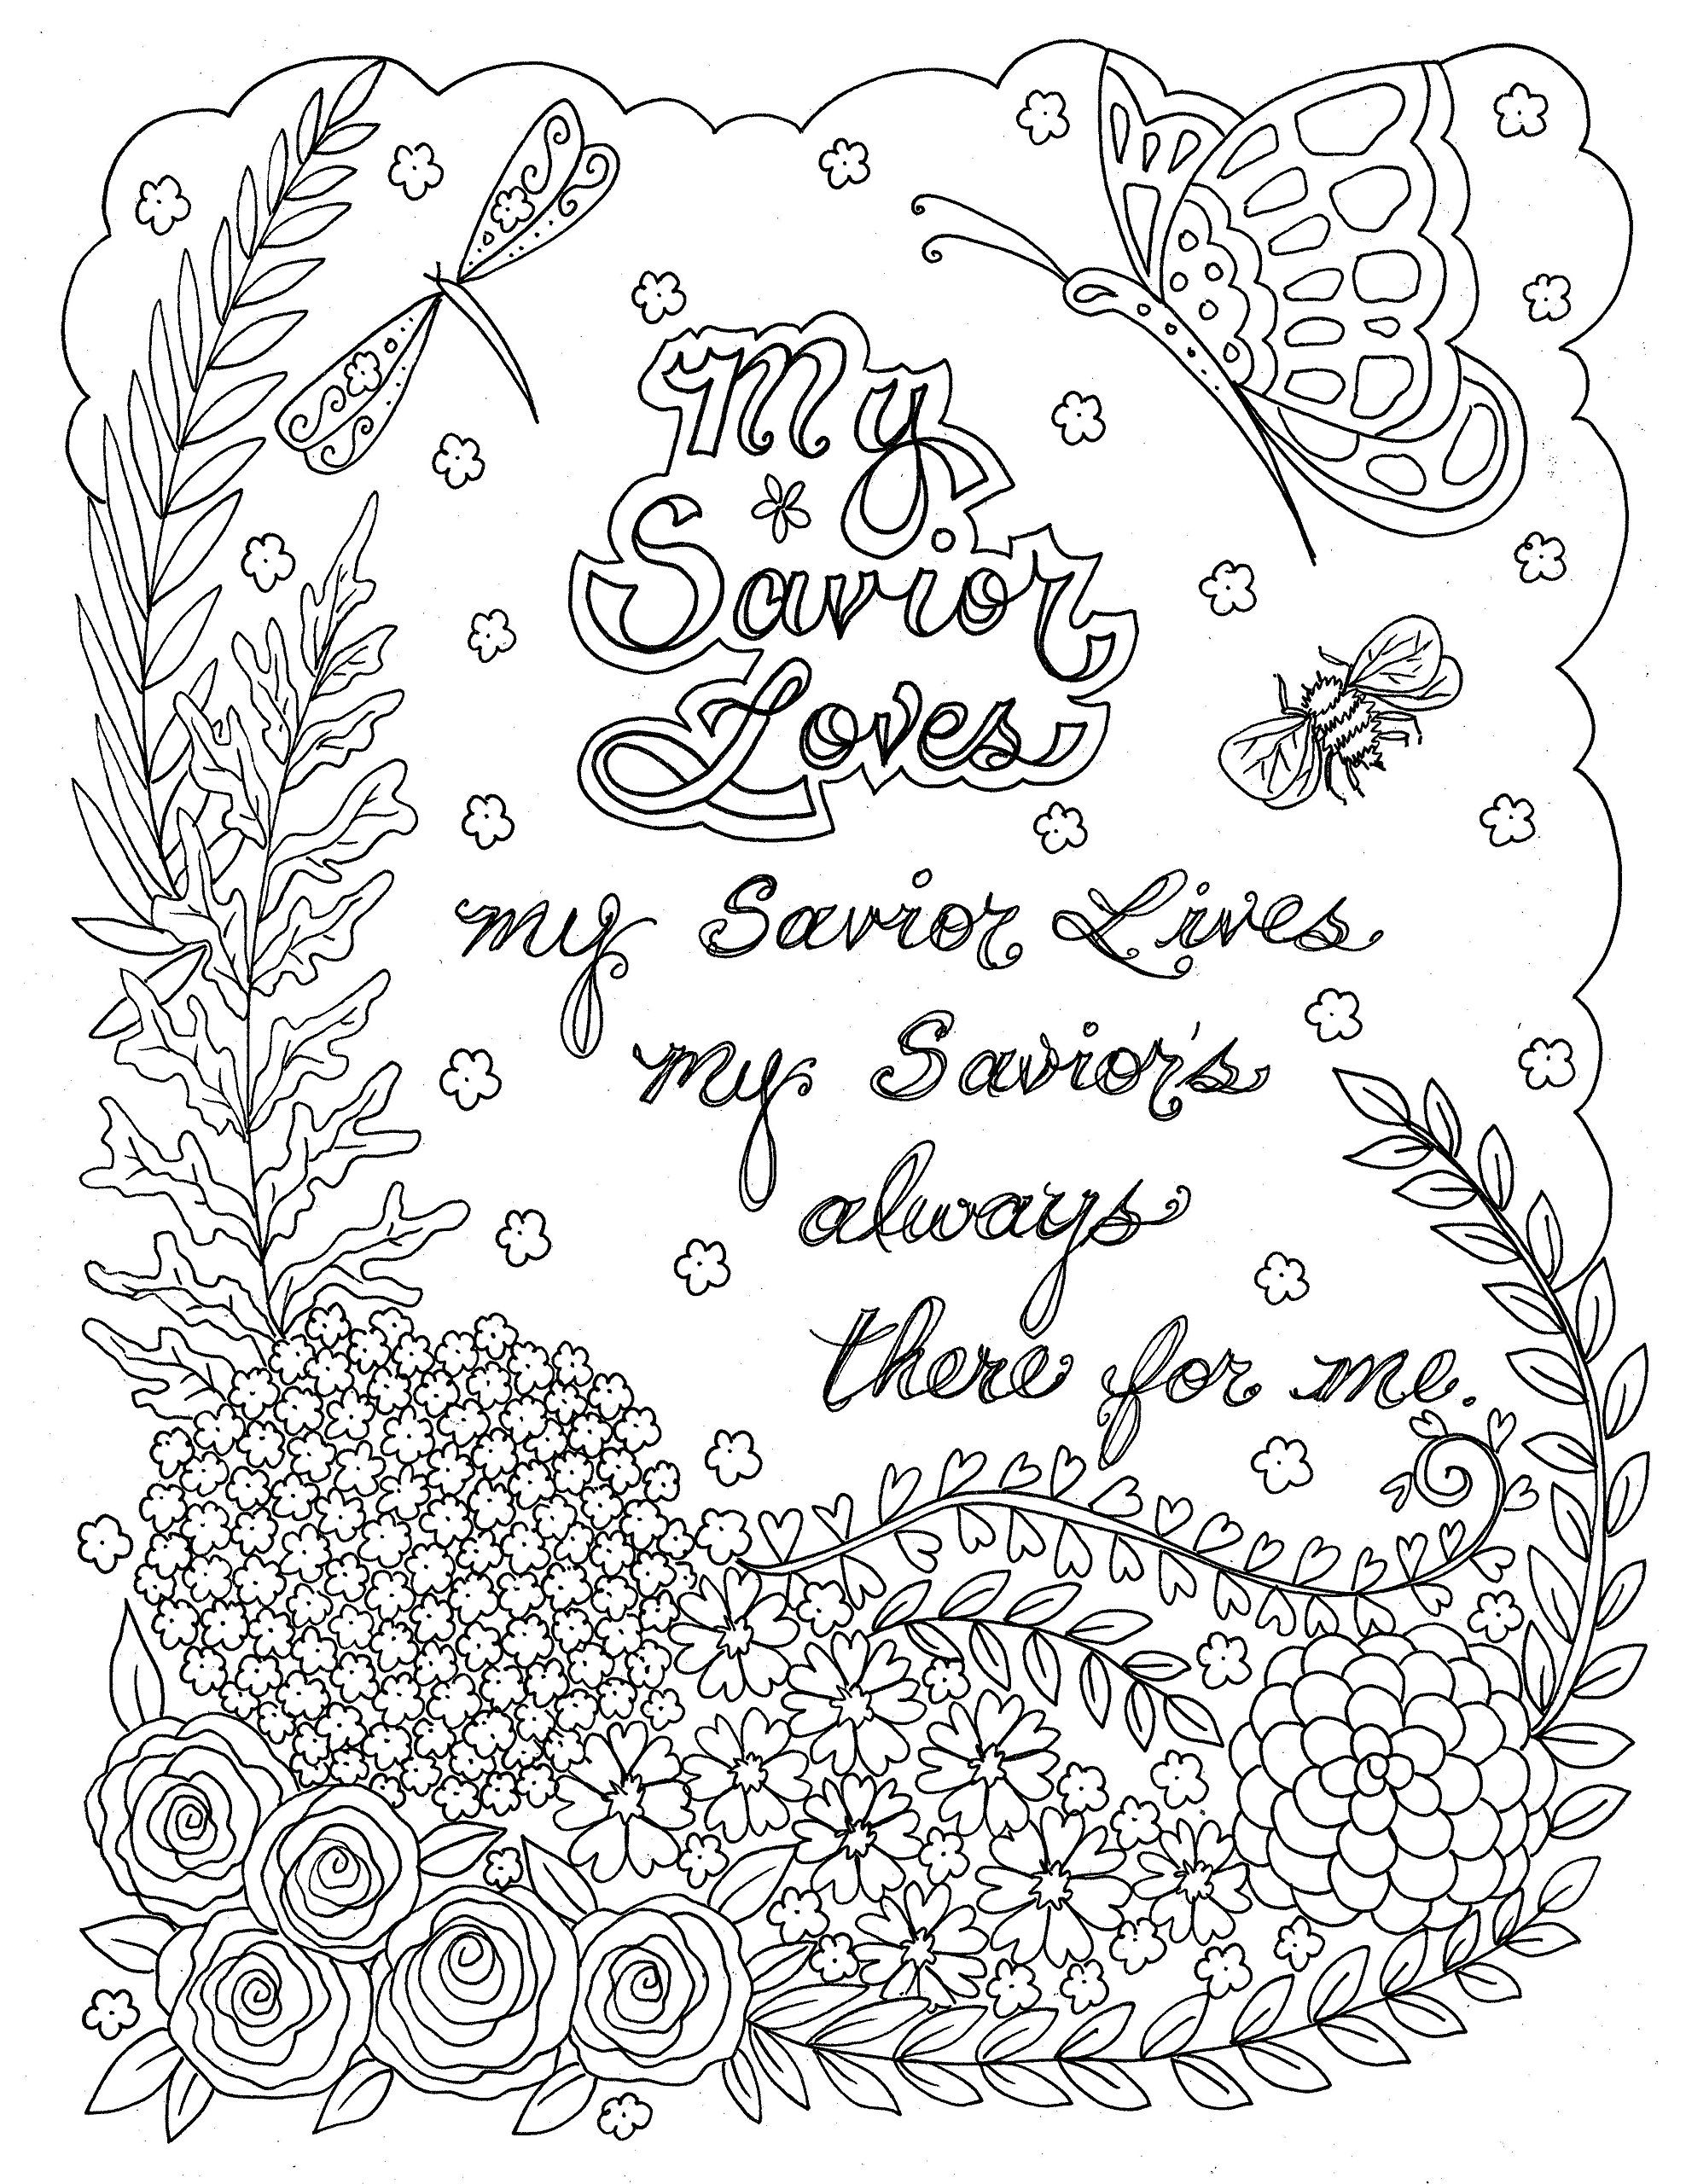 Robot Check Bible Coloring Pages Coloring Book Pages Coloring Books